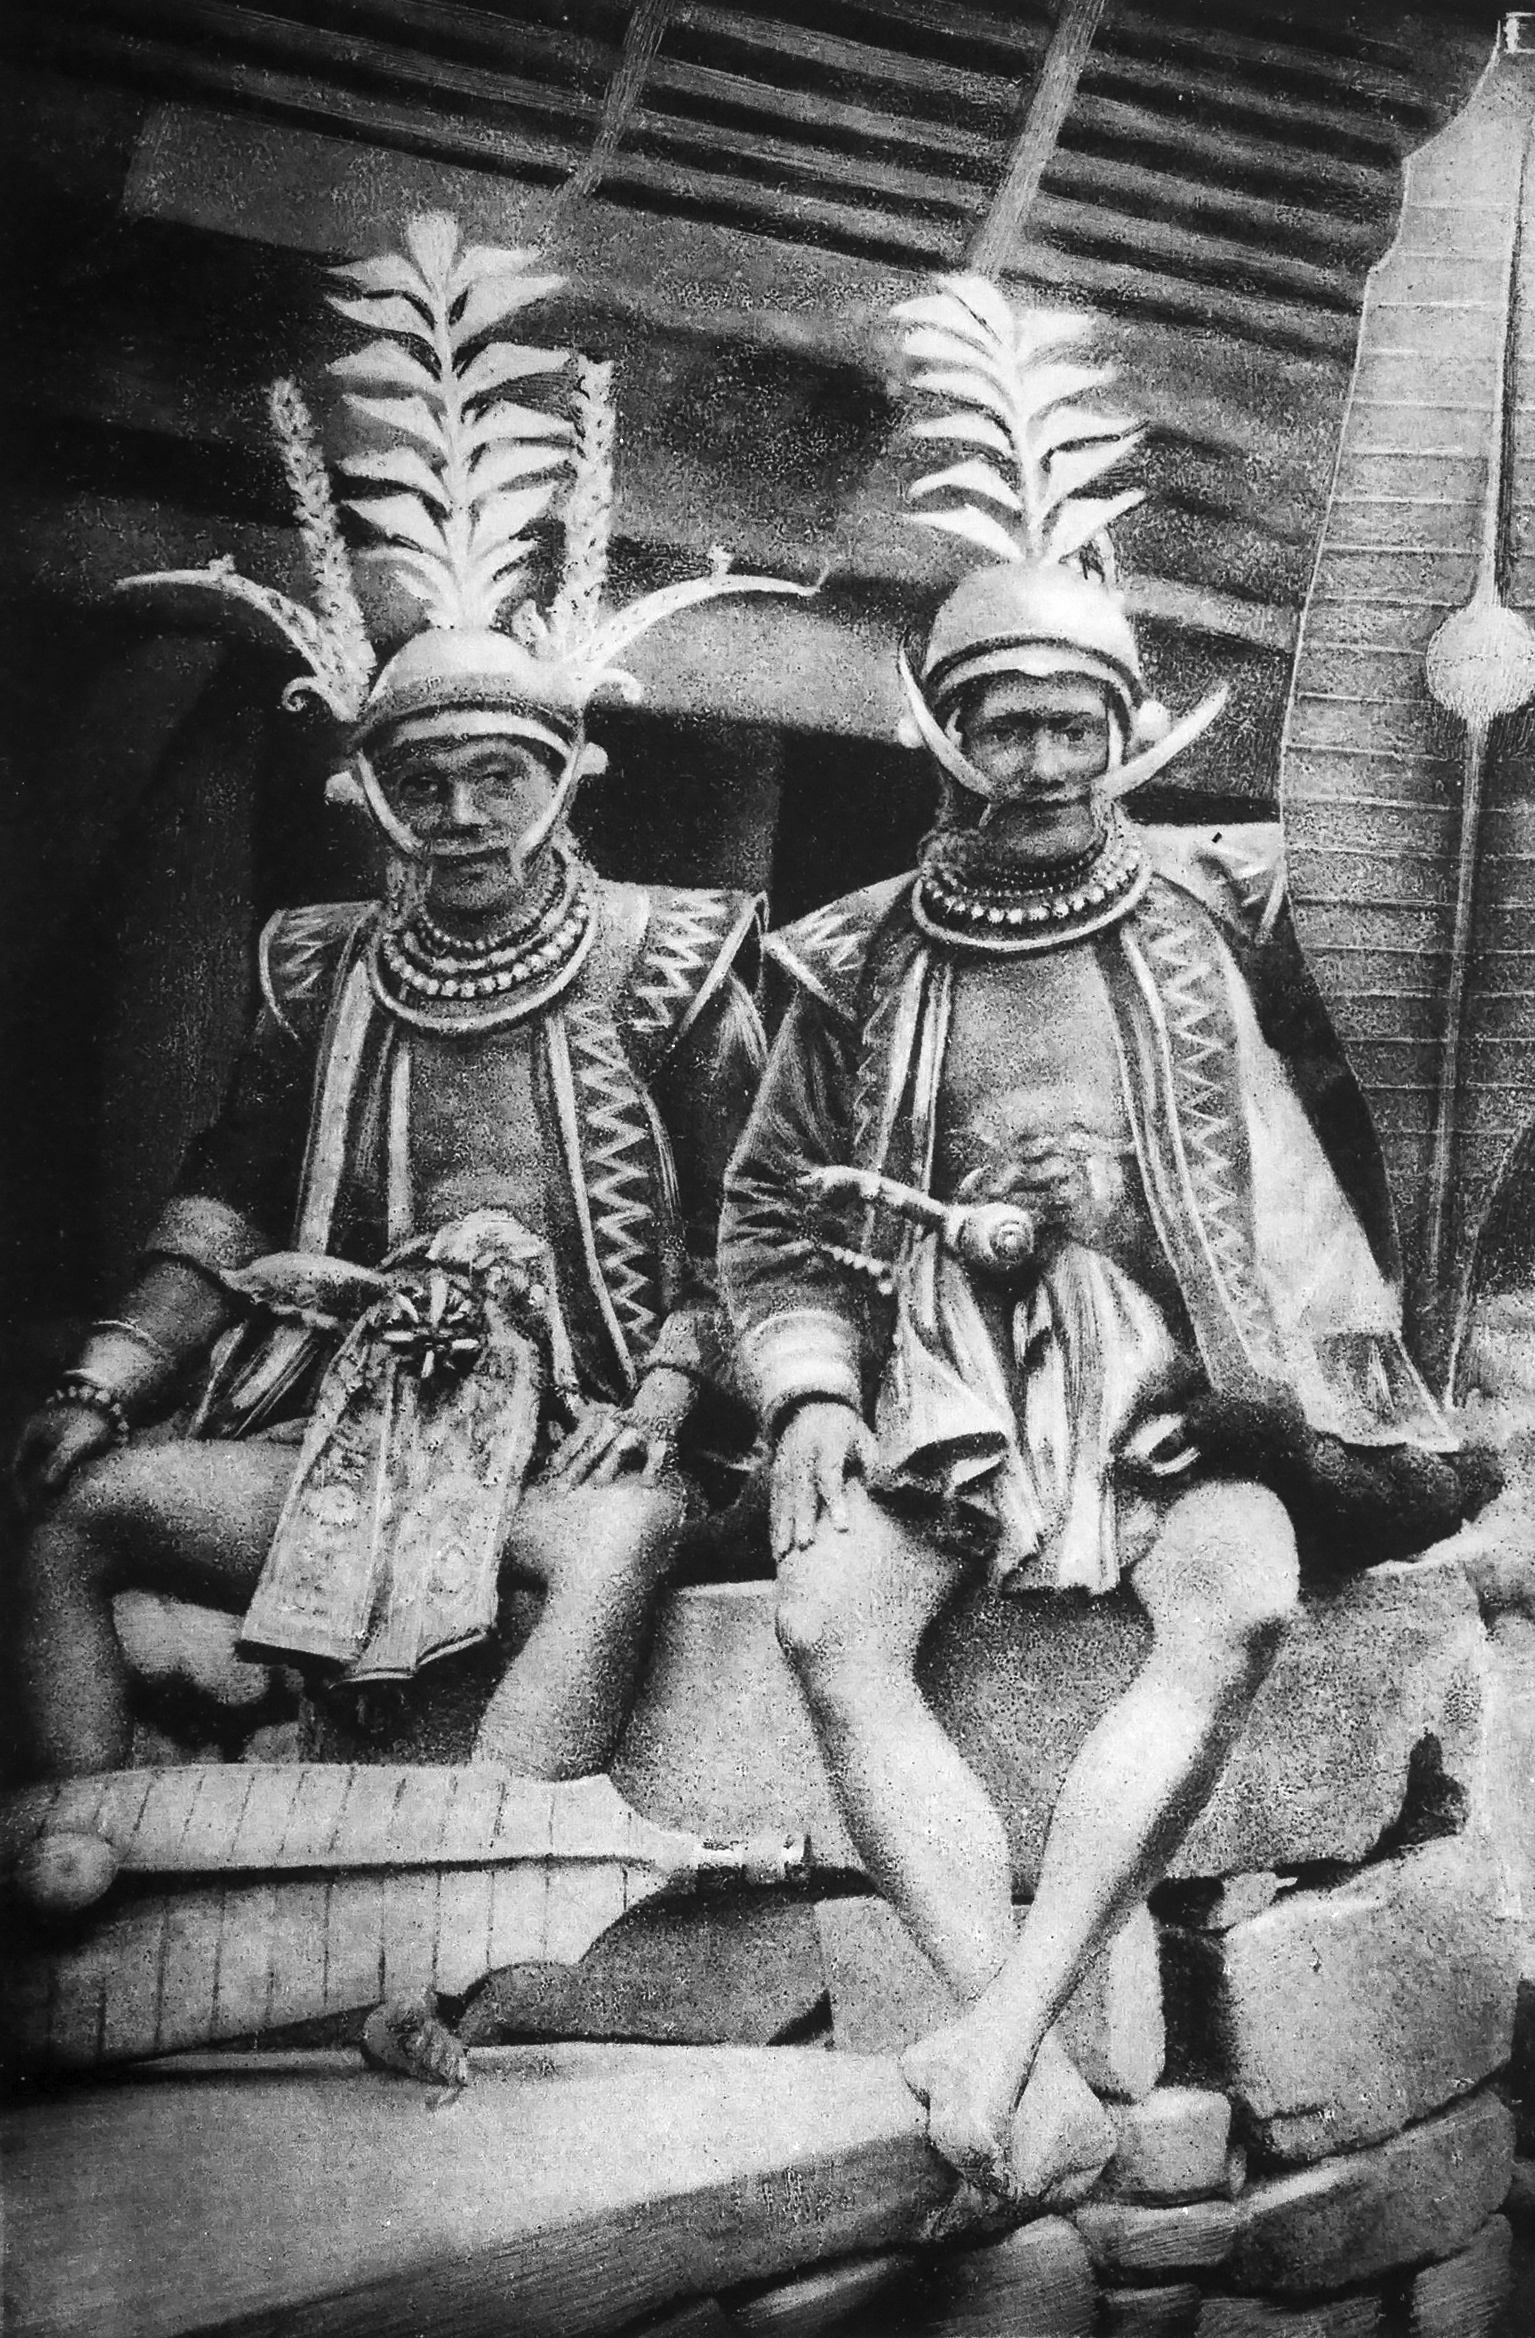 Noblemen from Hili Dgiòno, South Nias, wearing an abundance of jewelry, showing their rank in their golden crowns, moustaches, earrings, different types of necklaces and bracelets. (Photograph Modigliani 1890: fig.4)